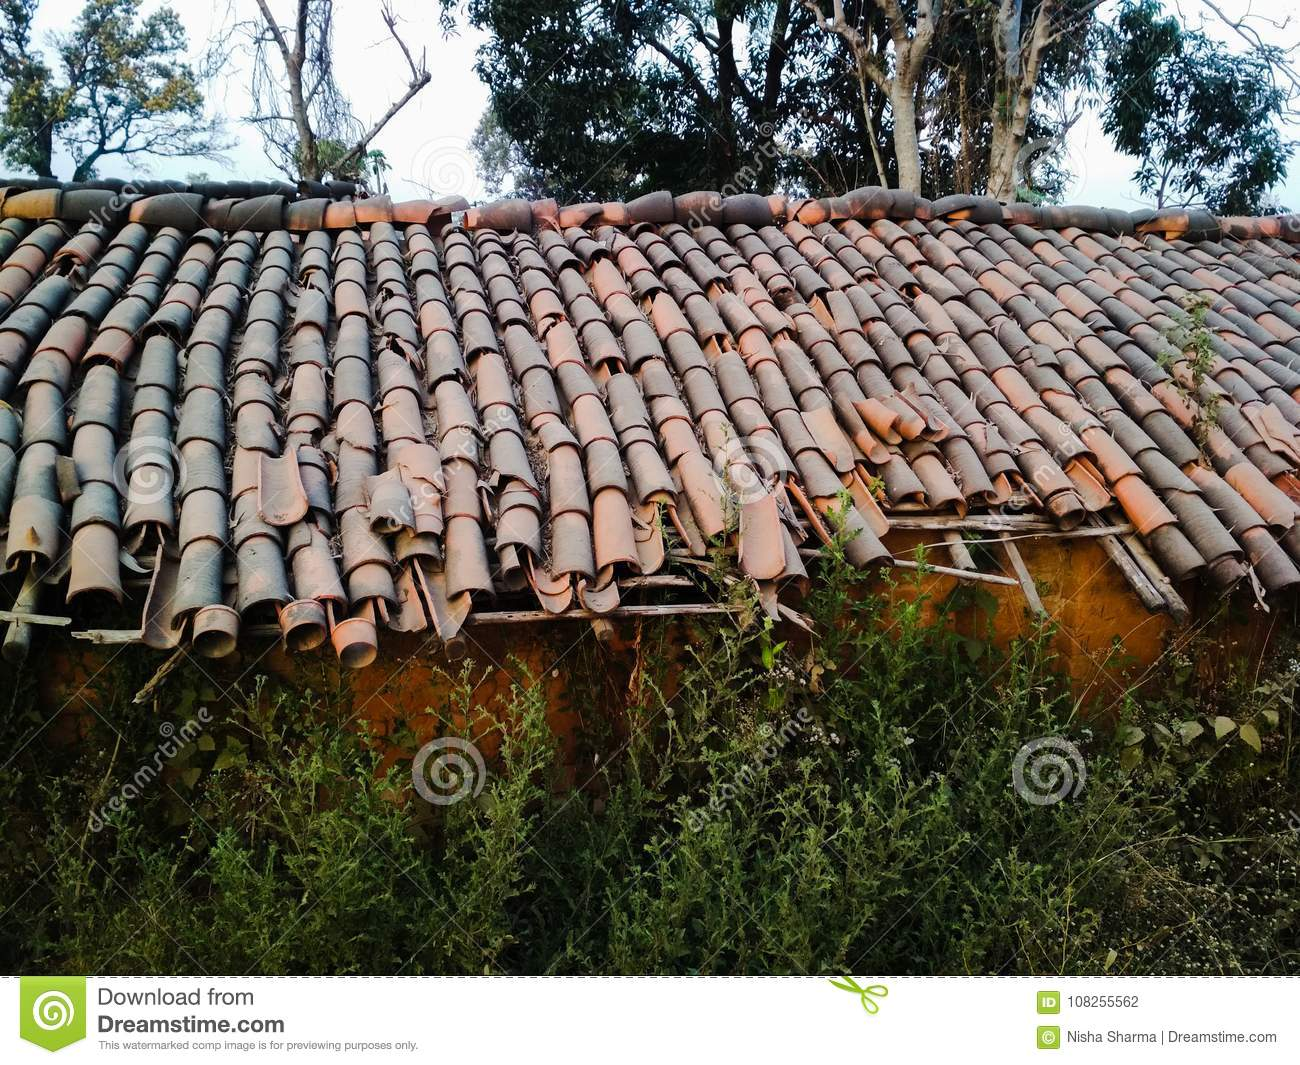 Rural home stock photo  Image of area, house, tiled - 108255562